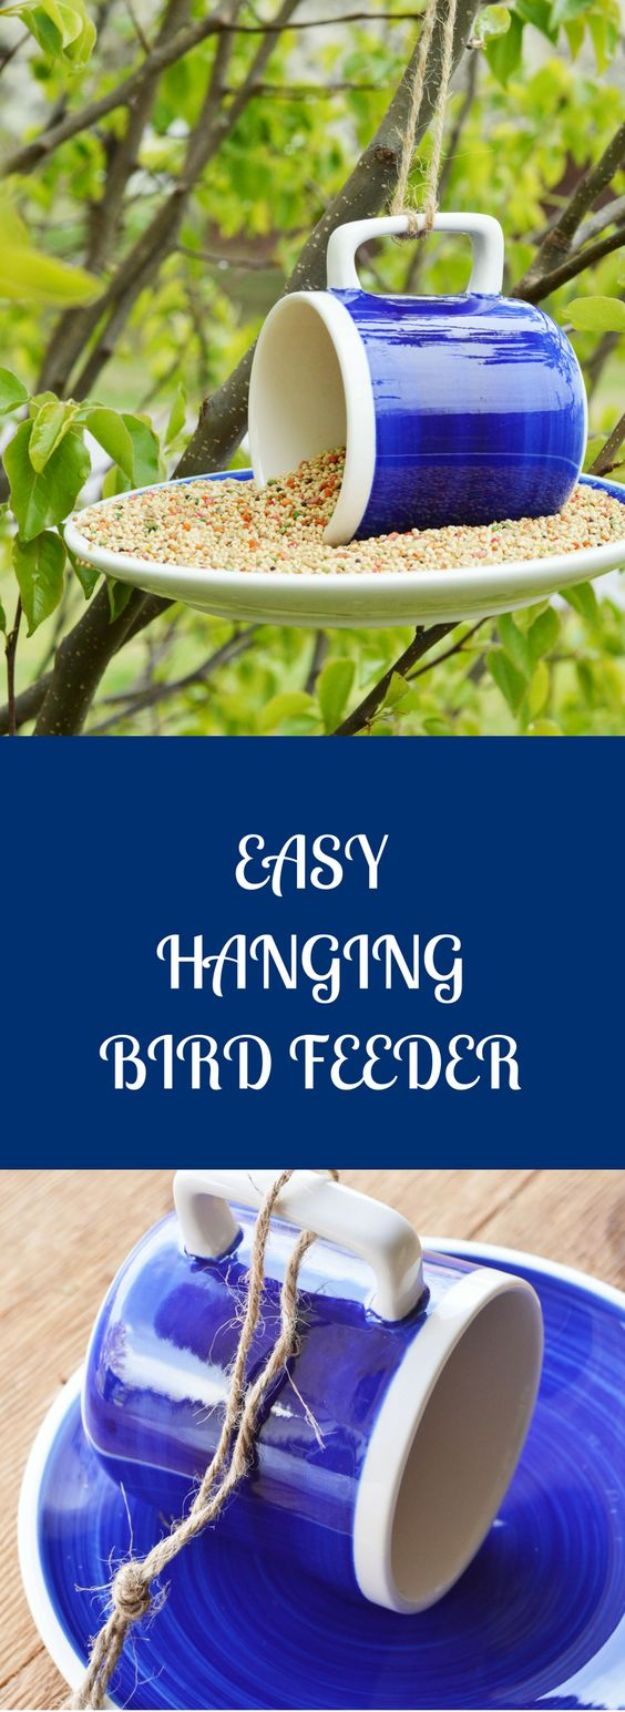 DIY Bird Feeders - Super Easy Hanging Bird Feeder - Easy Do It Yourself Homemade Bird Feeder Ideas from Mason Jar, Wooden, Wine Bottle, Milk Jug, Plastic, Dollar Store Supplies - Squirrel Proof, Unique and Creative Tutorials That Make Cool DIY Gifts #diyideas #birds